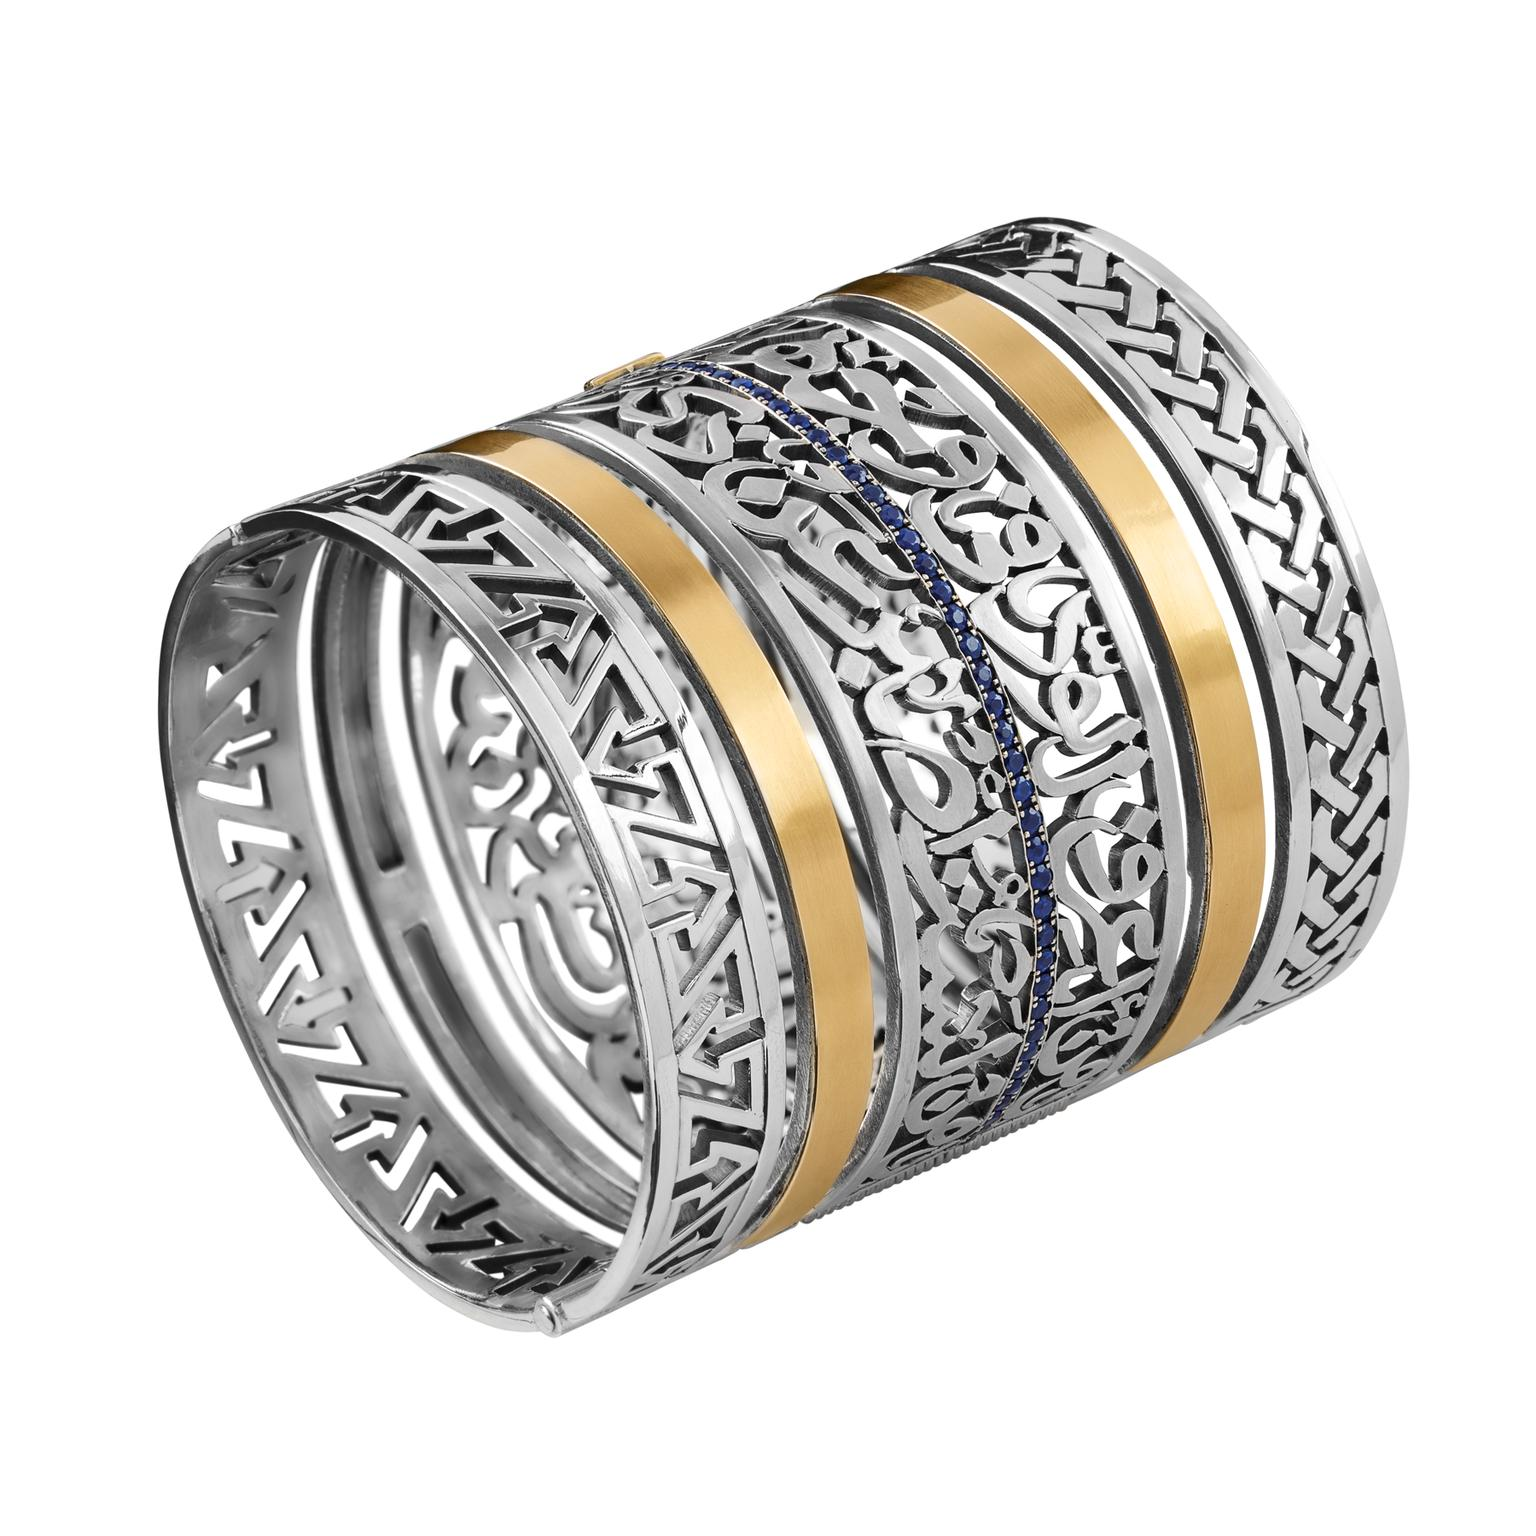 Azza Fahmy Wonders of Nature classic cuff with sapphires, inscribed with poetry